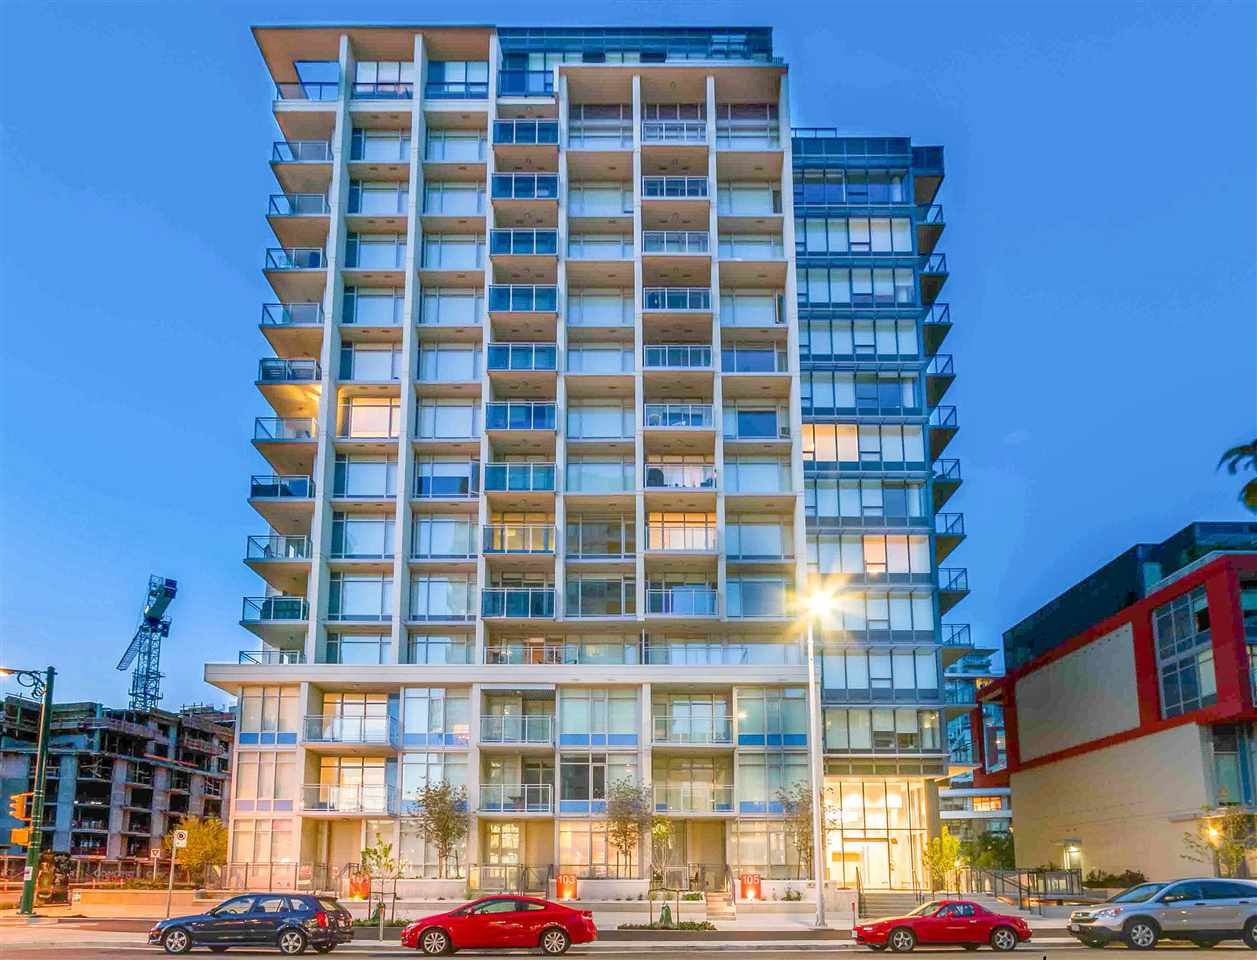 """Main Photo: 908 111 E 1ST Avenue in Vancouver: Mount Pleasant VE Condo for sale in """"Block -100"""" (Vancouver East)  : MLS®# R2347230"""